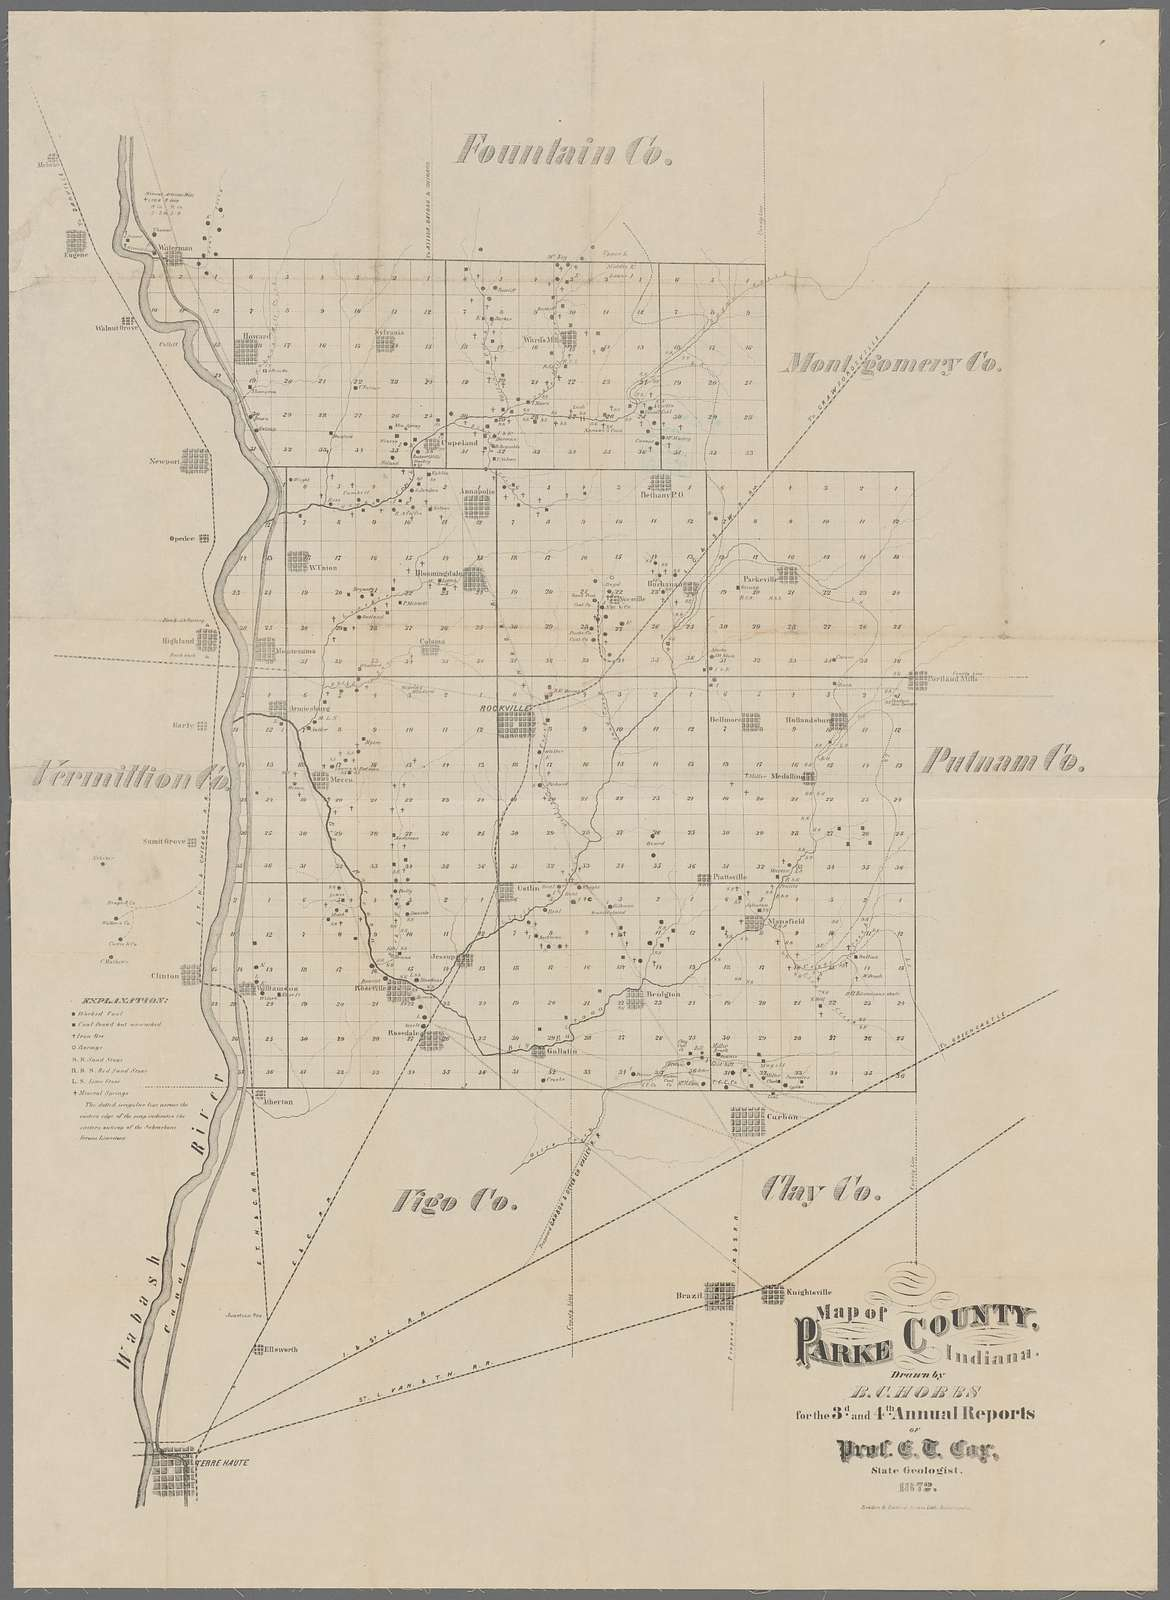 Map of Parke County, Indiana